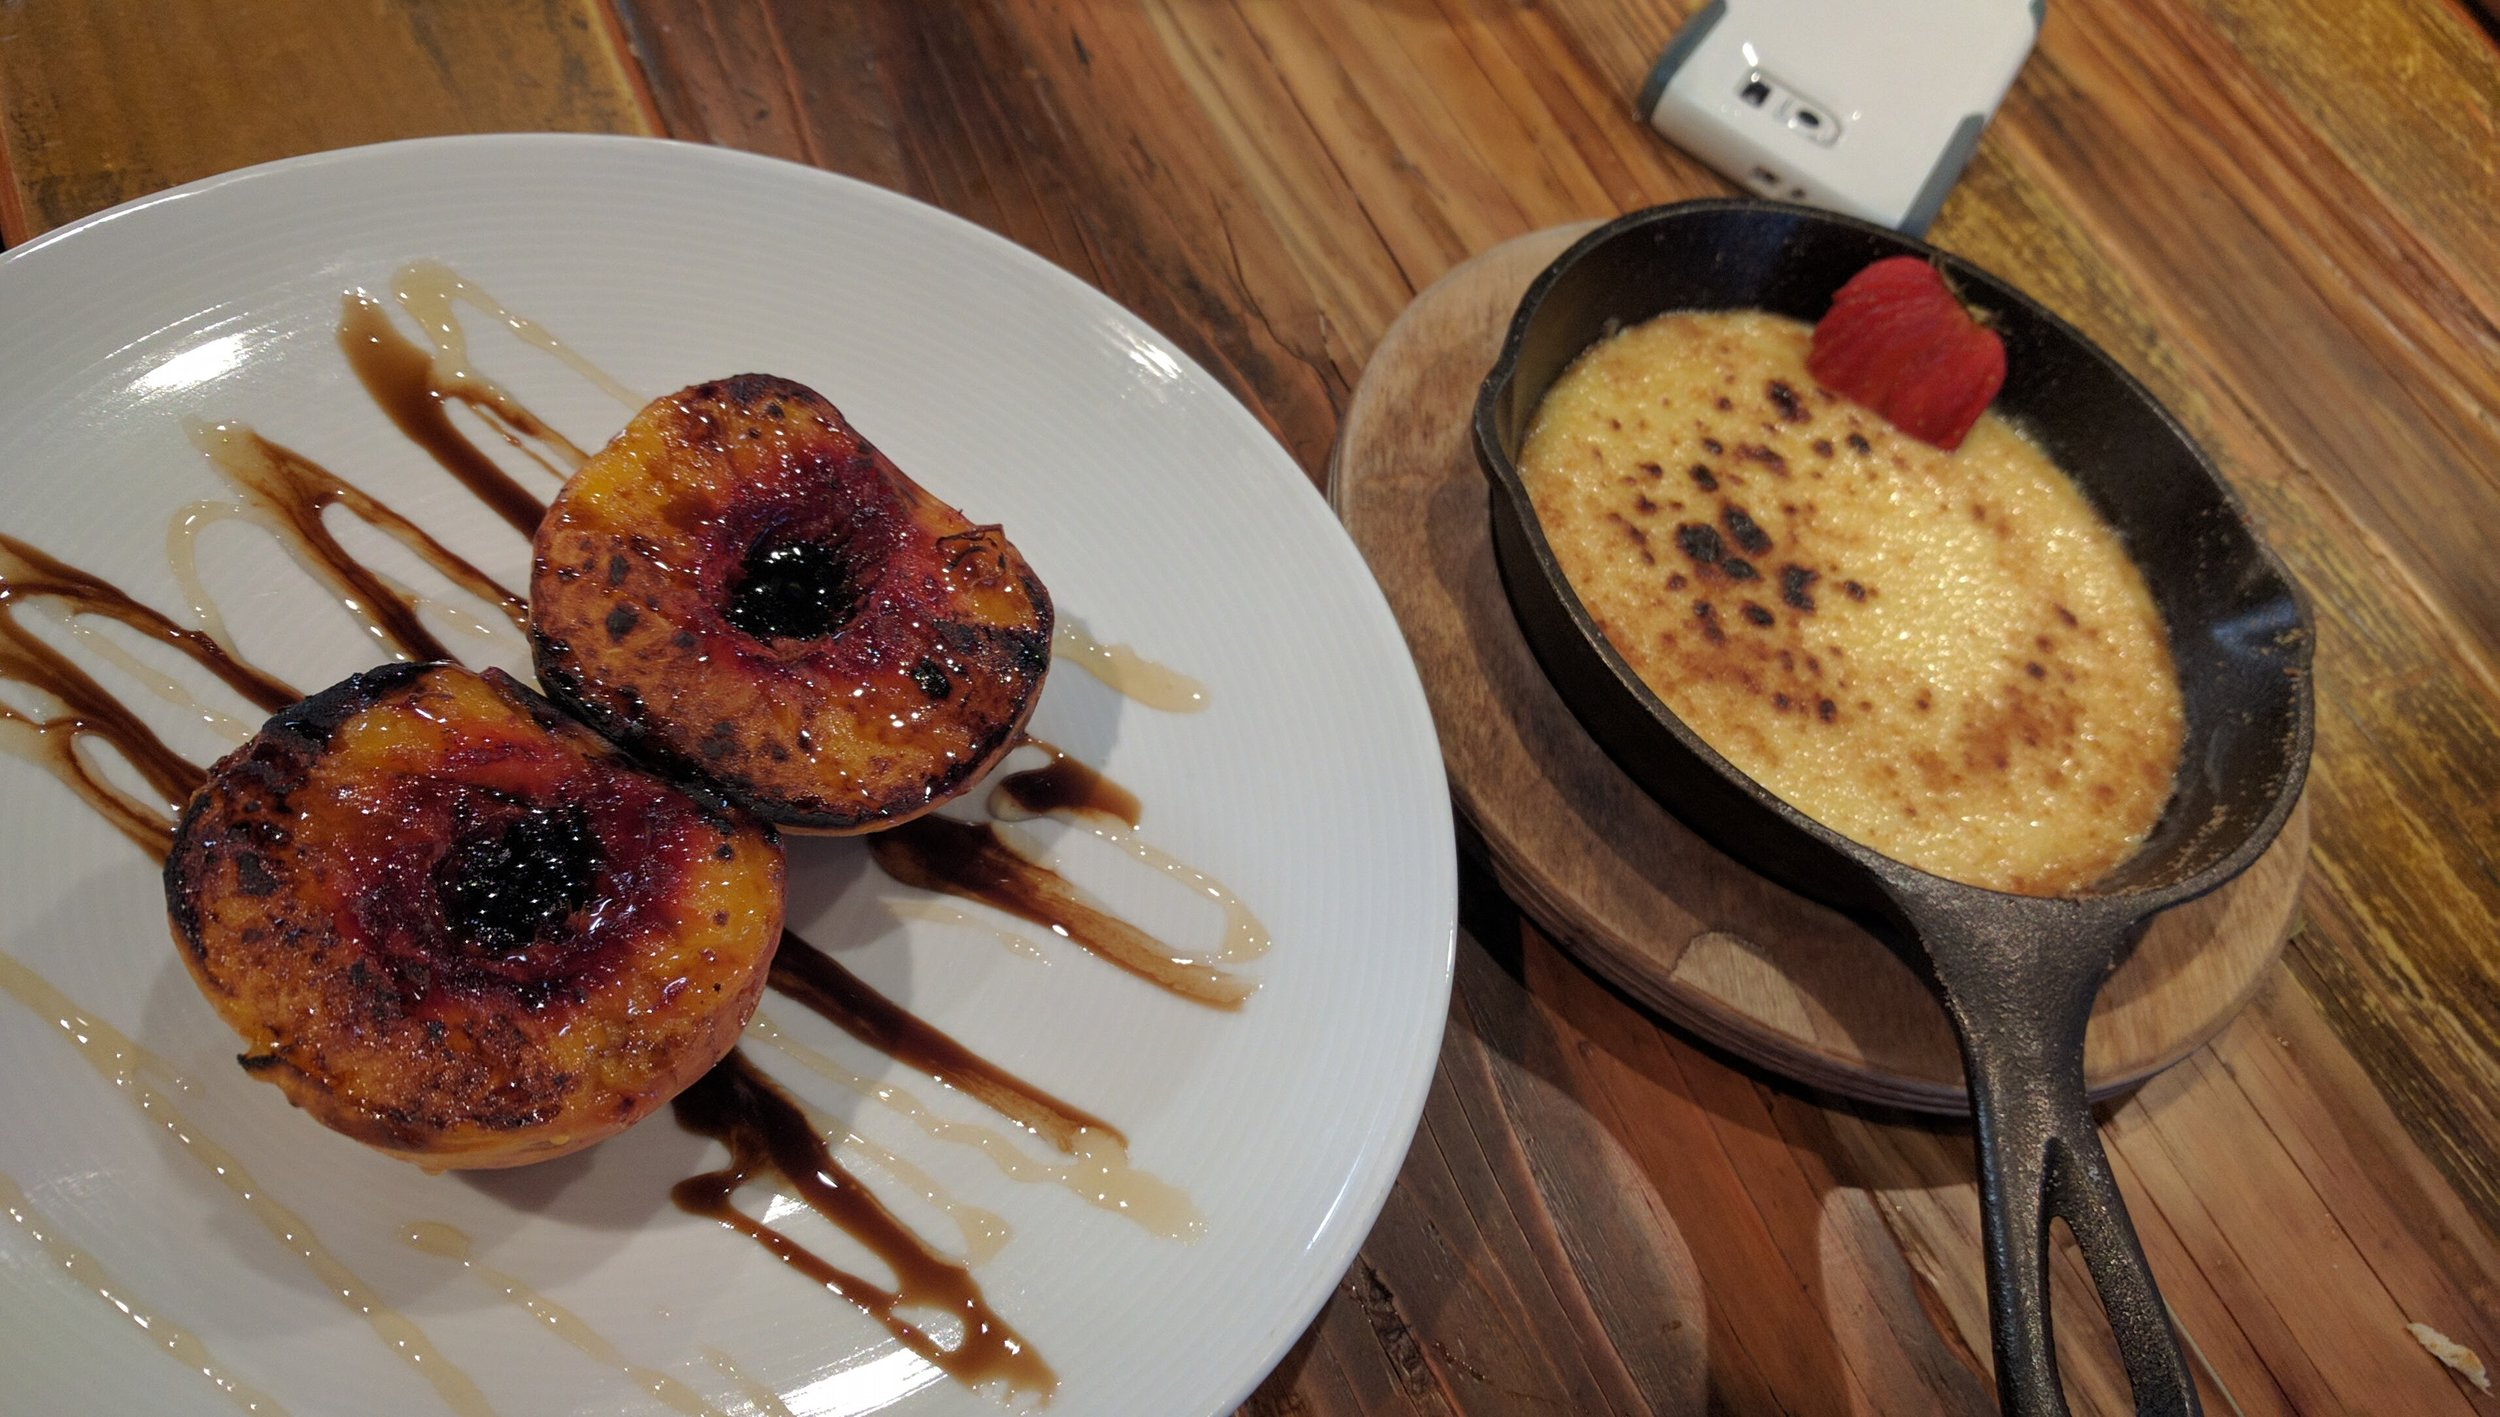 Wood fired peaches with honey and balsamic glaze paired with a cast iron creme broulee.